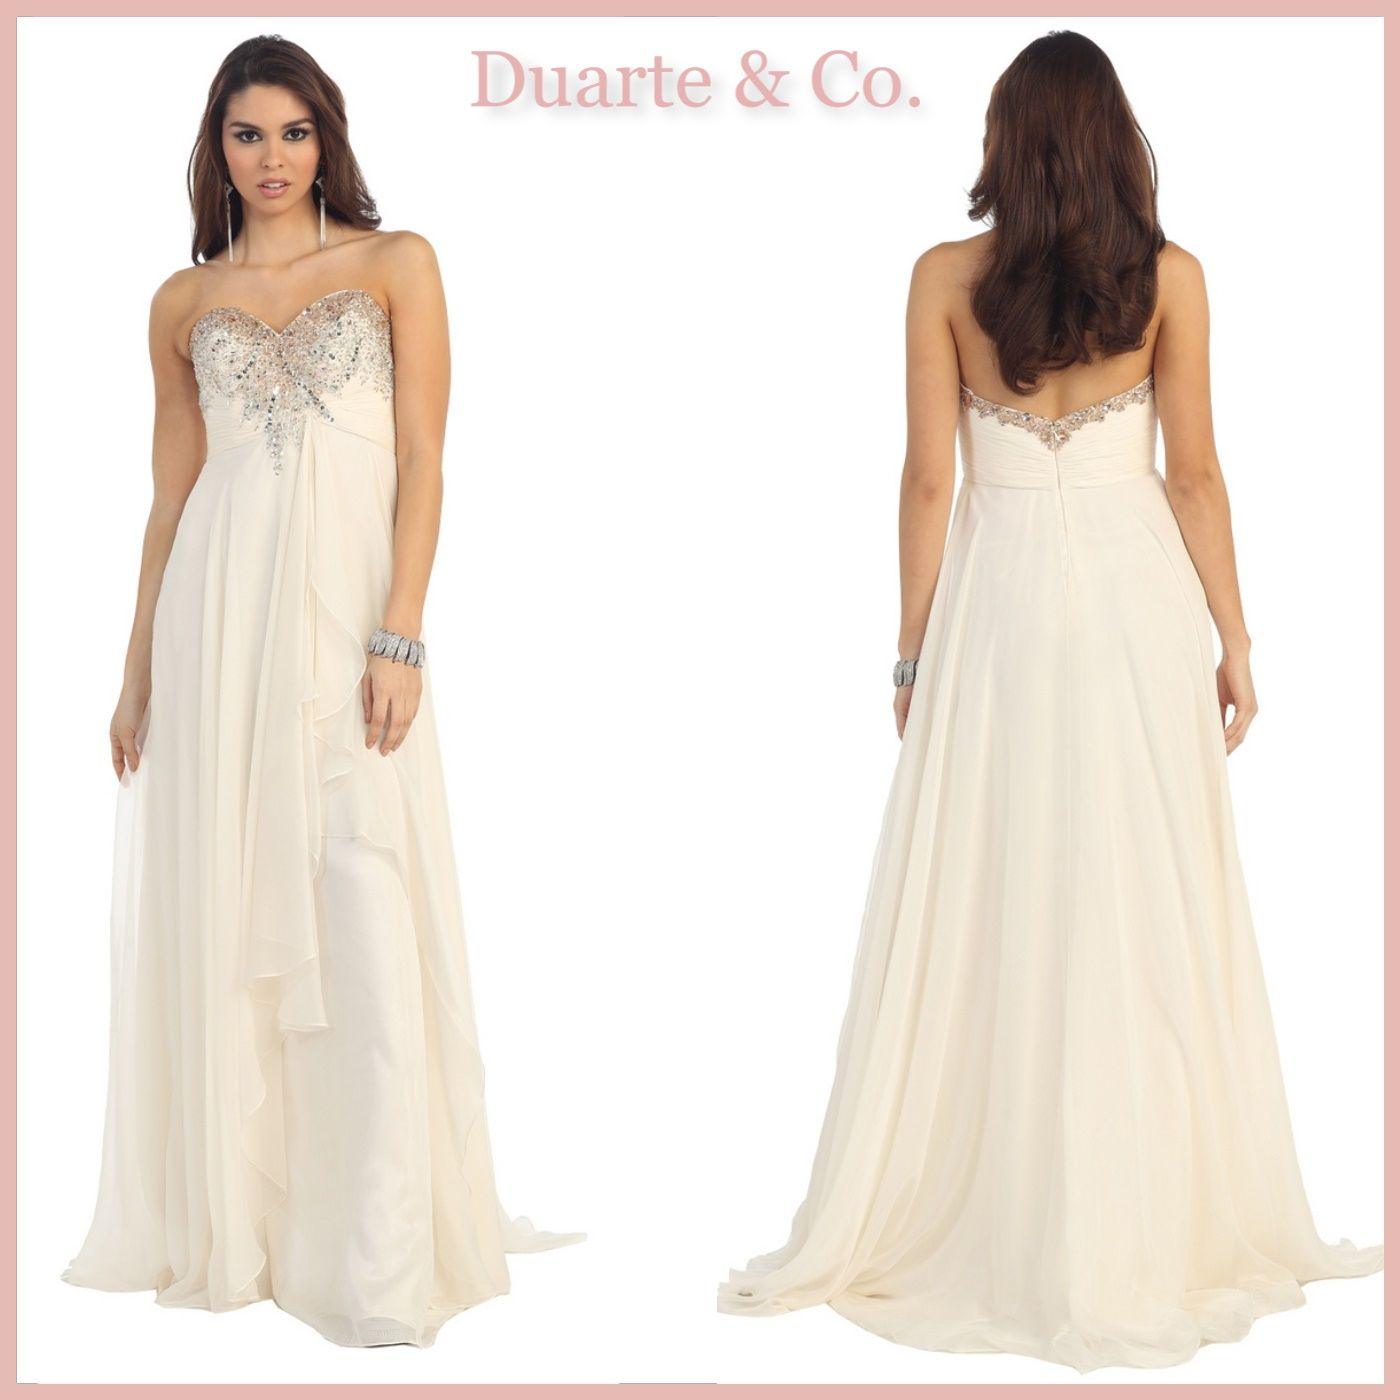 7036f4ddbc RQ7087  148.00 Strapless Sequin Chiffon Dress W Plus Size Comes in 10  colors Available from 4 to size 20.